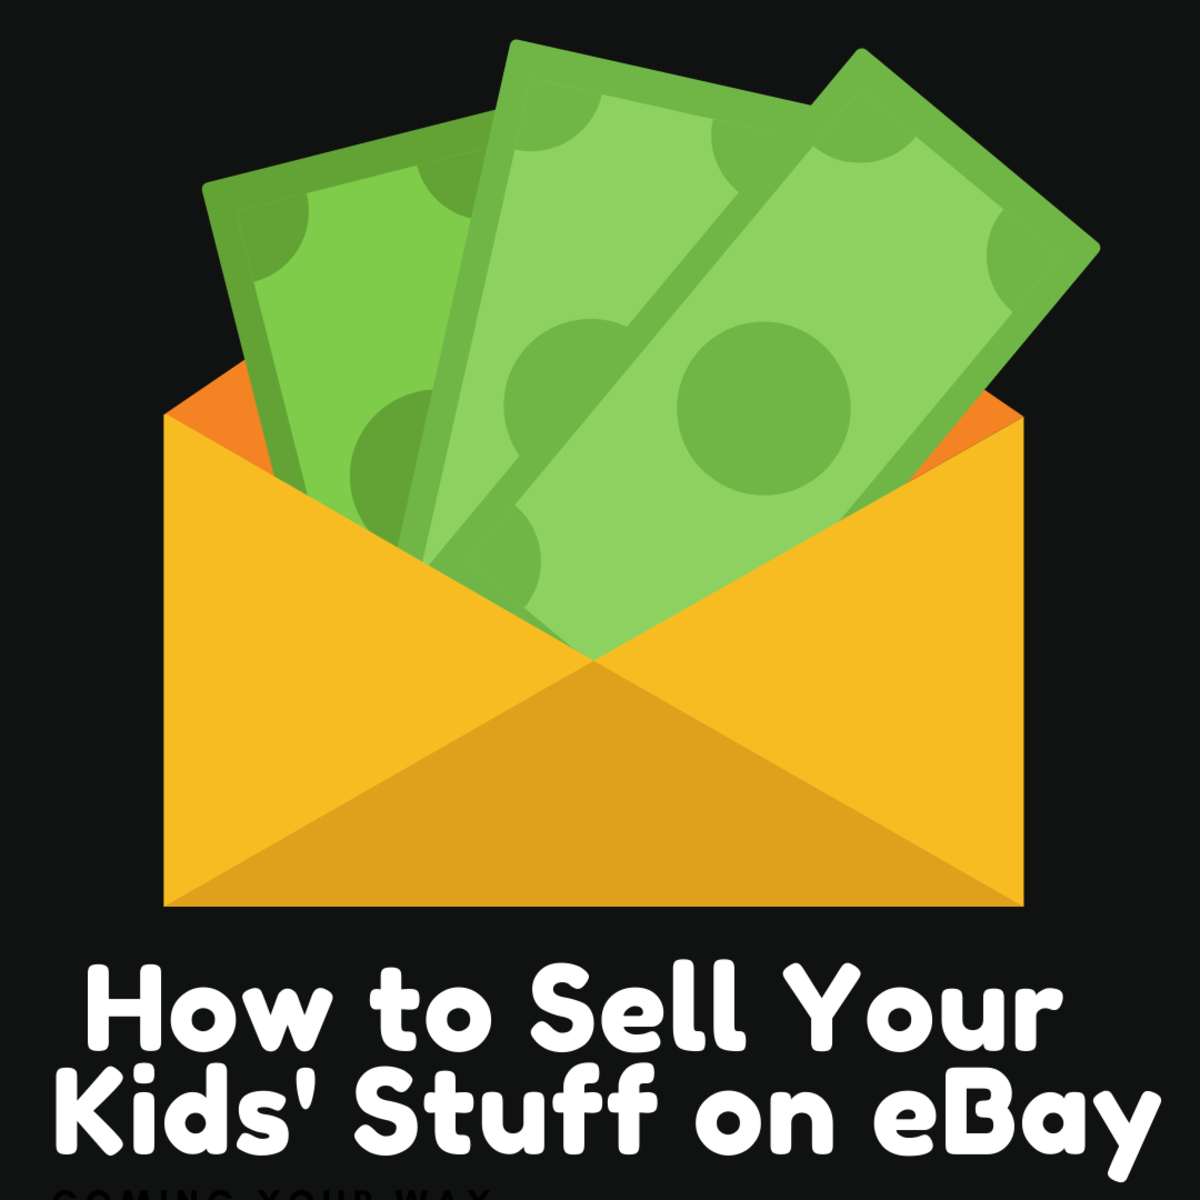 Selling your kids' old stuff on eBay can help you earn some much needed extra cash.